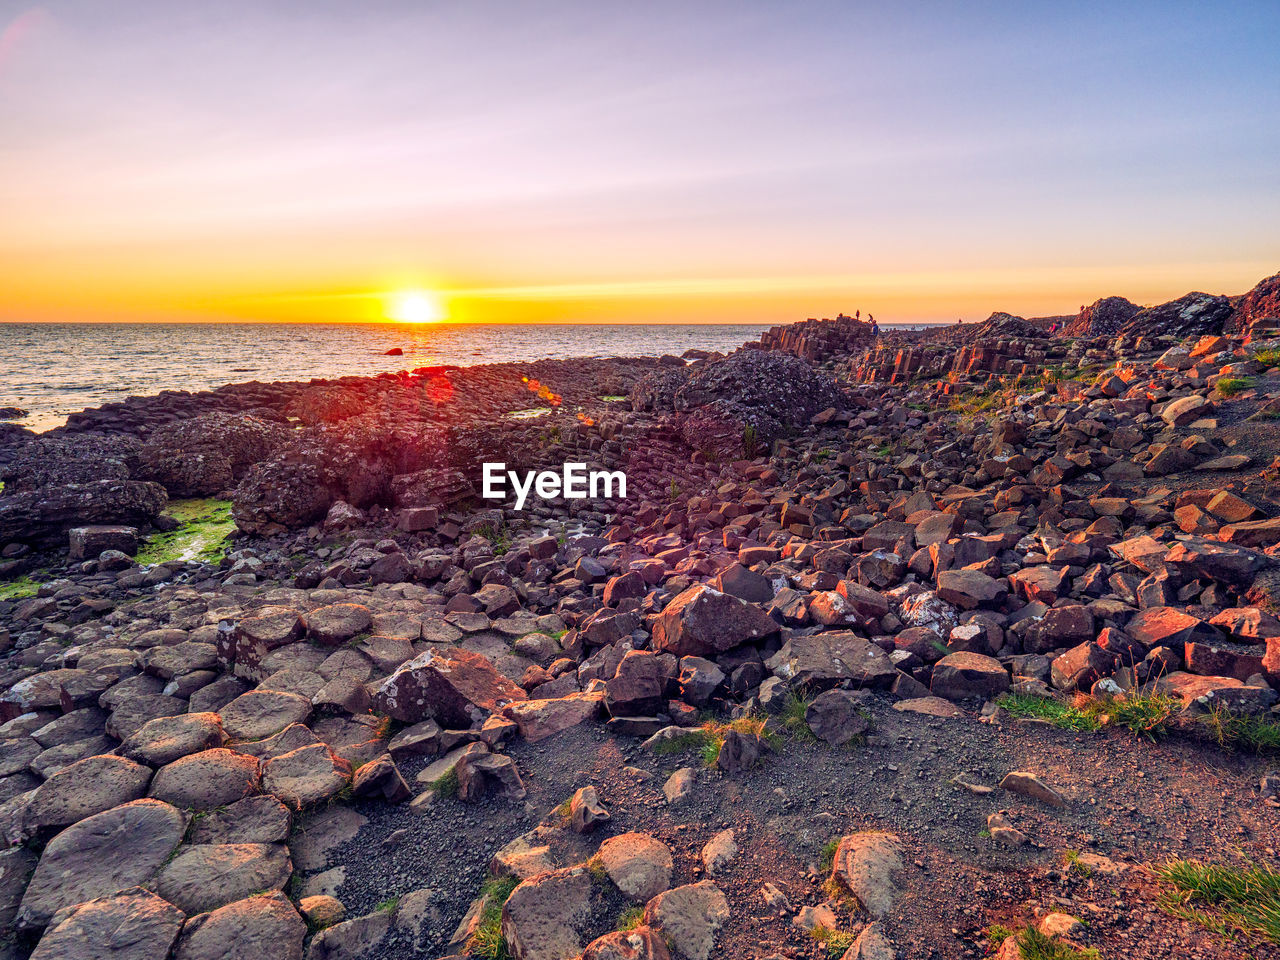 sky, sunset, rock, solid, scenics - nature, water, sea, rock - object, orange color, beauty in nature, sun, beach, land, nature, tranquil scene, tranquility, non-urban scene, no people, horizon, horizon over water, outdoors, pebble